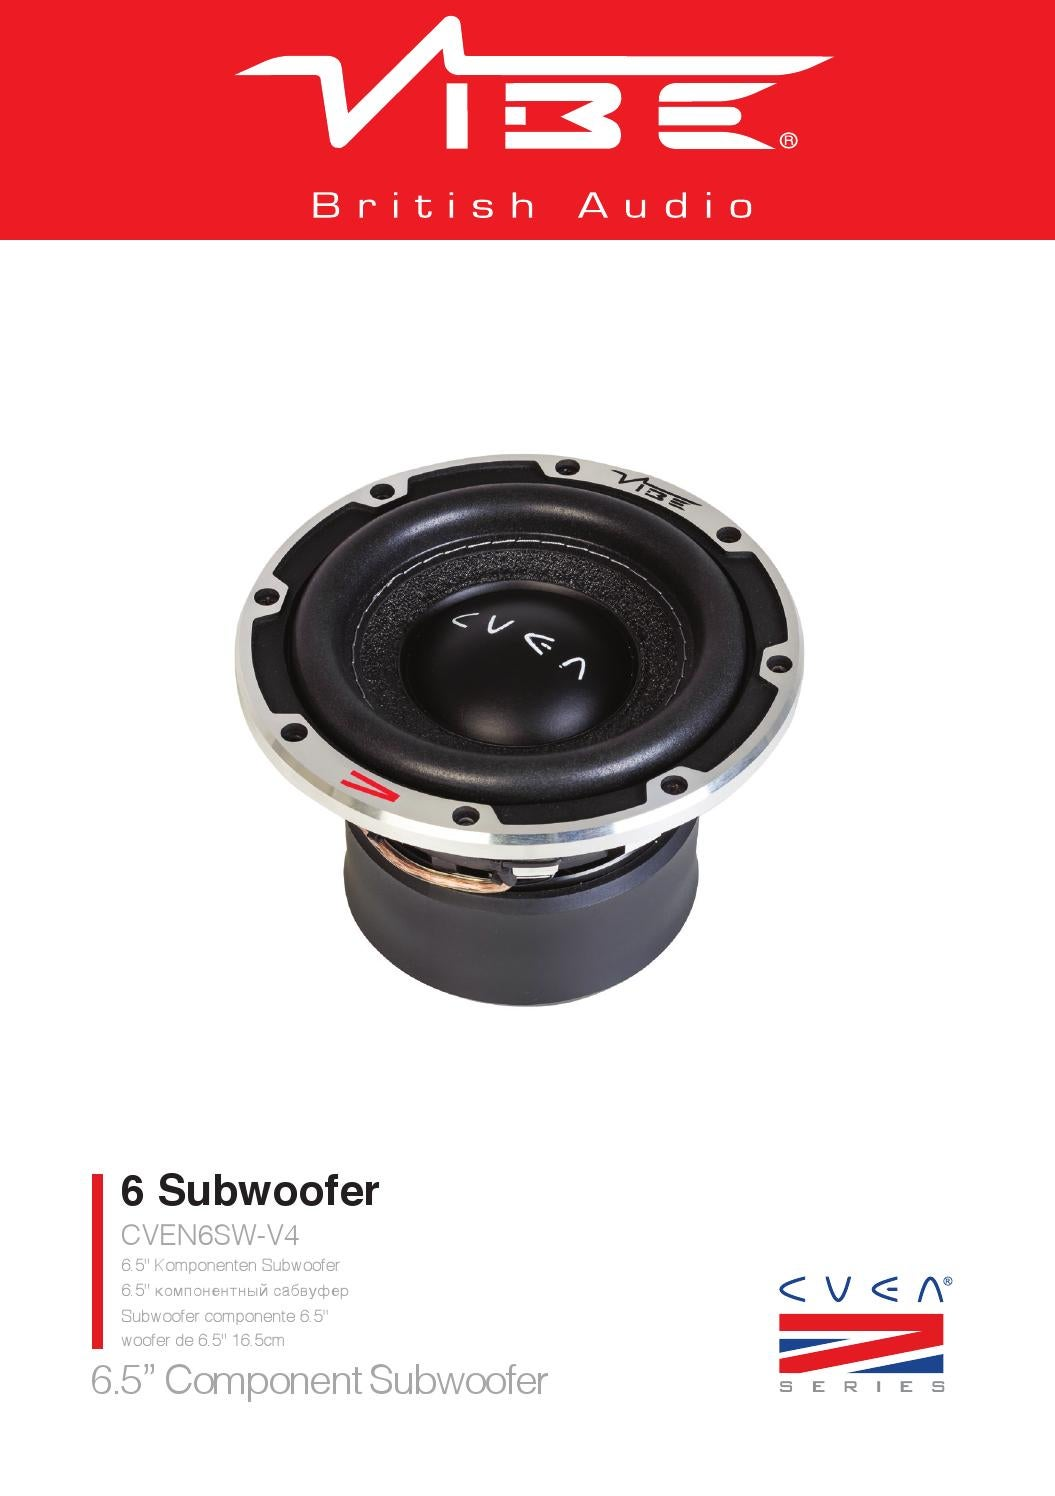 Vibe Subwoofer Wiring Diagram 29 Images 6 Page 1 Cven6sw V4 Manual By Audio Issuu At Cita